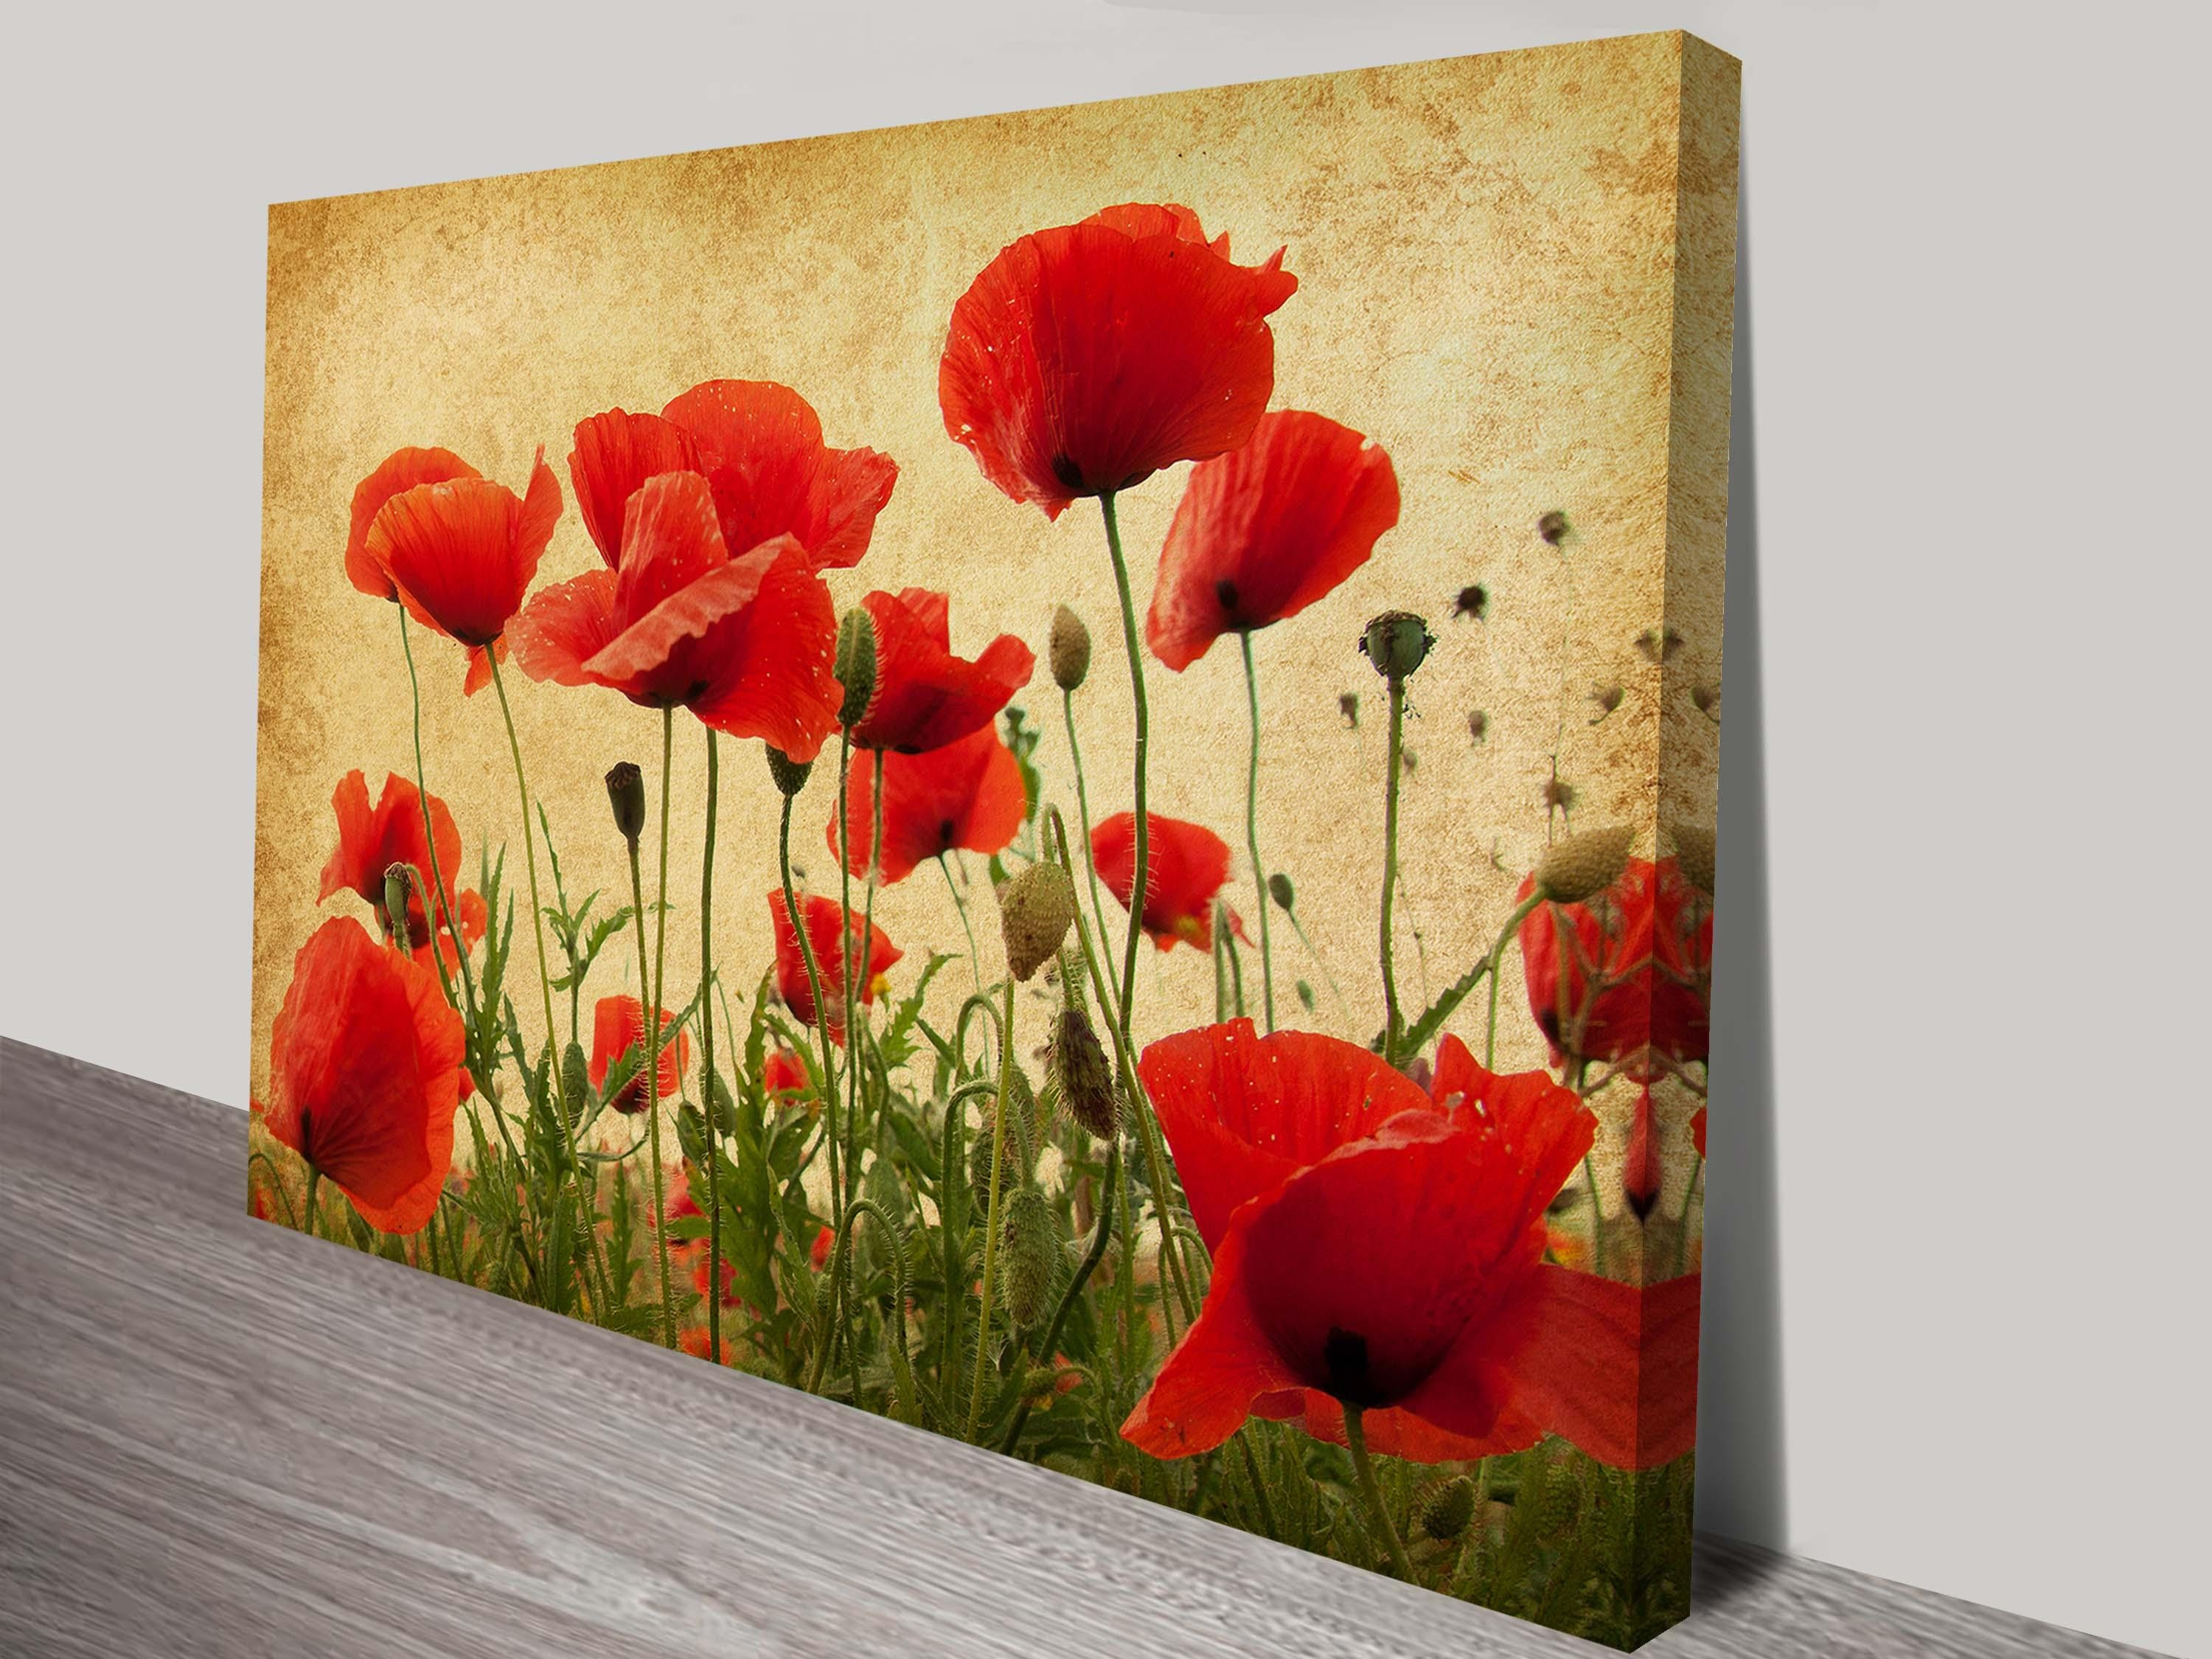 Vintage Poppies Flower Art | Canvas Prints Melbourne pertaining to Metal Poppy Wall Art